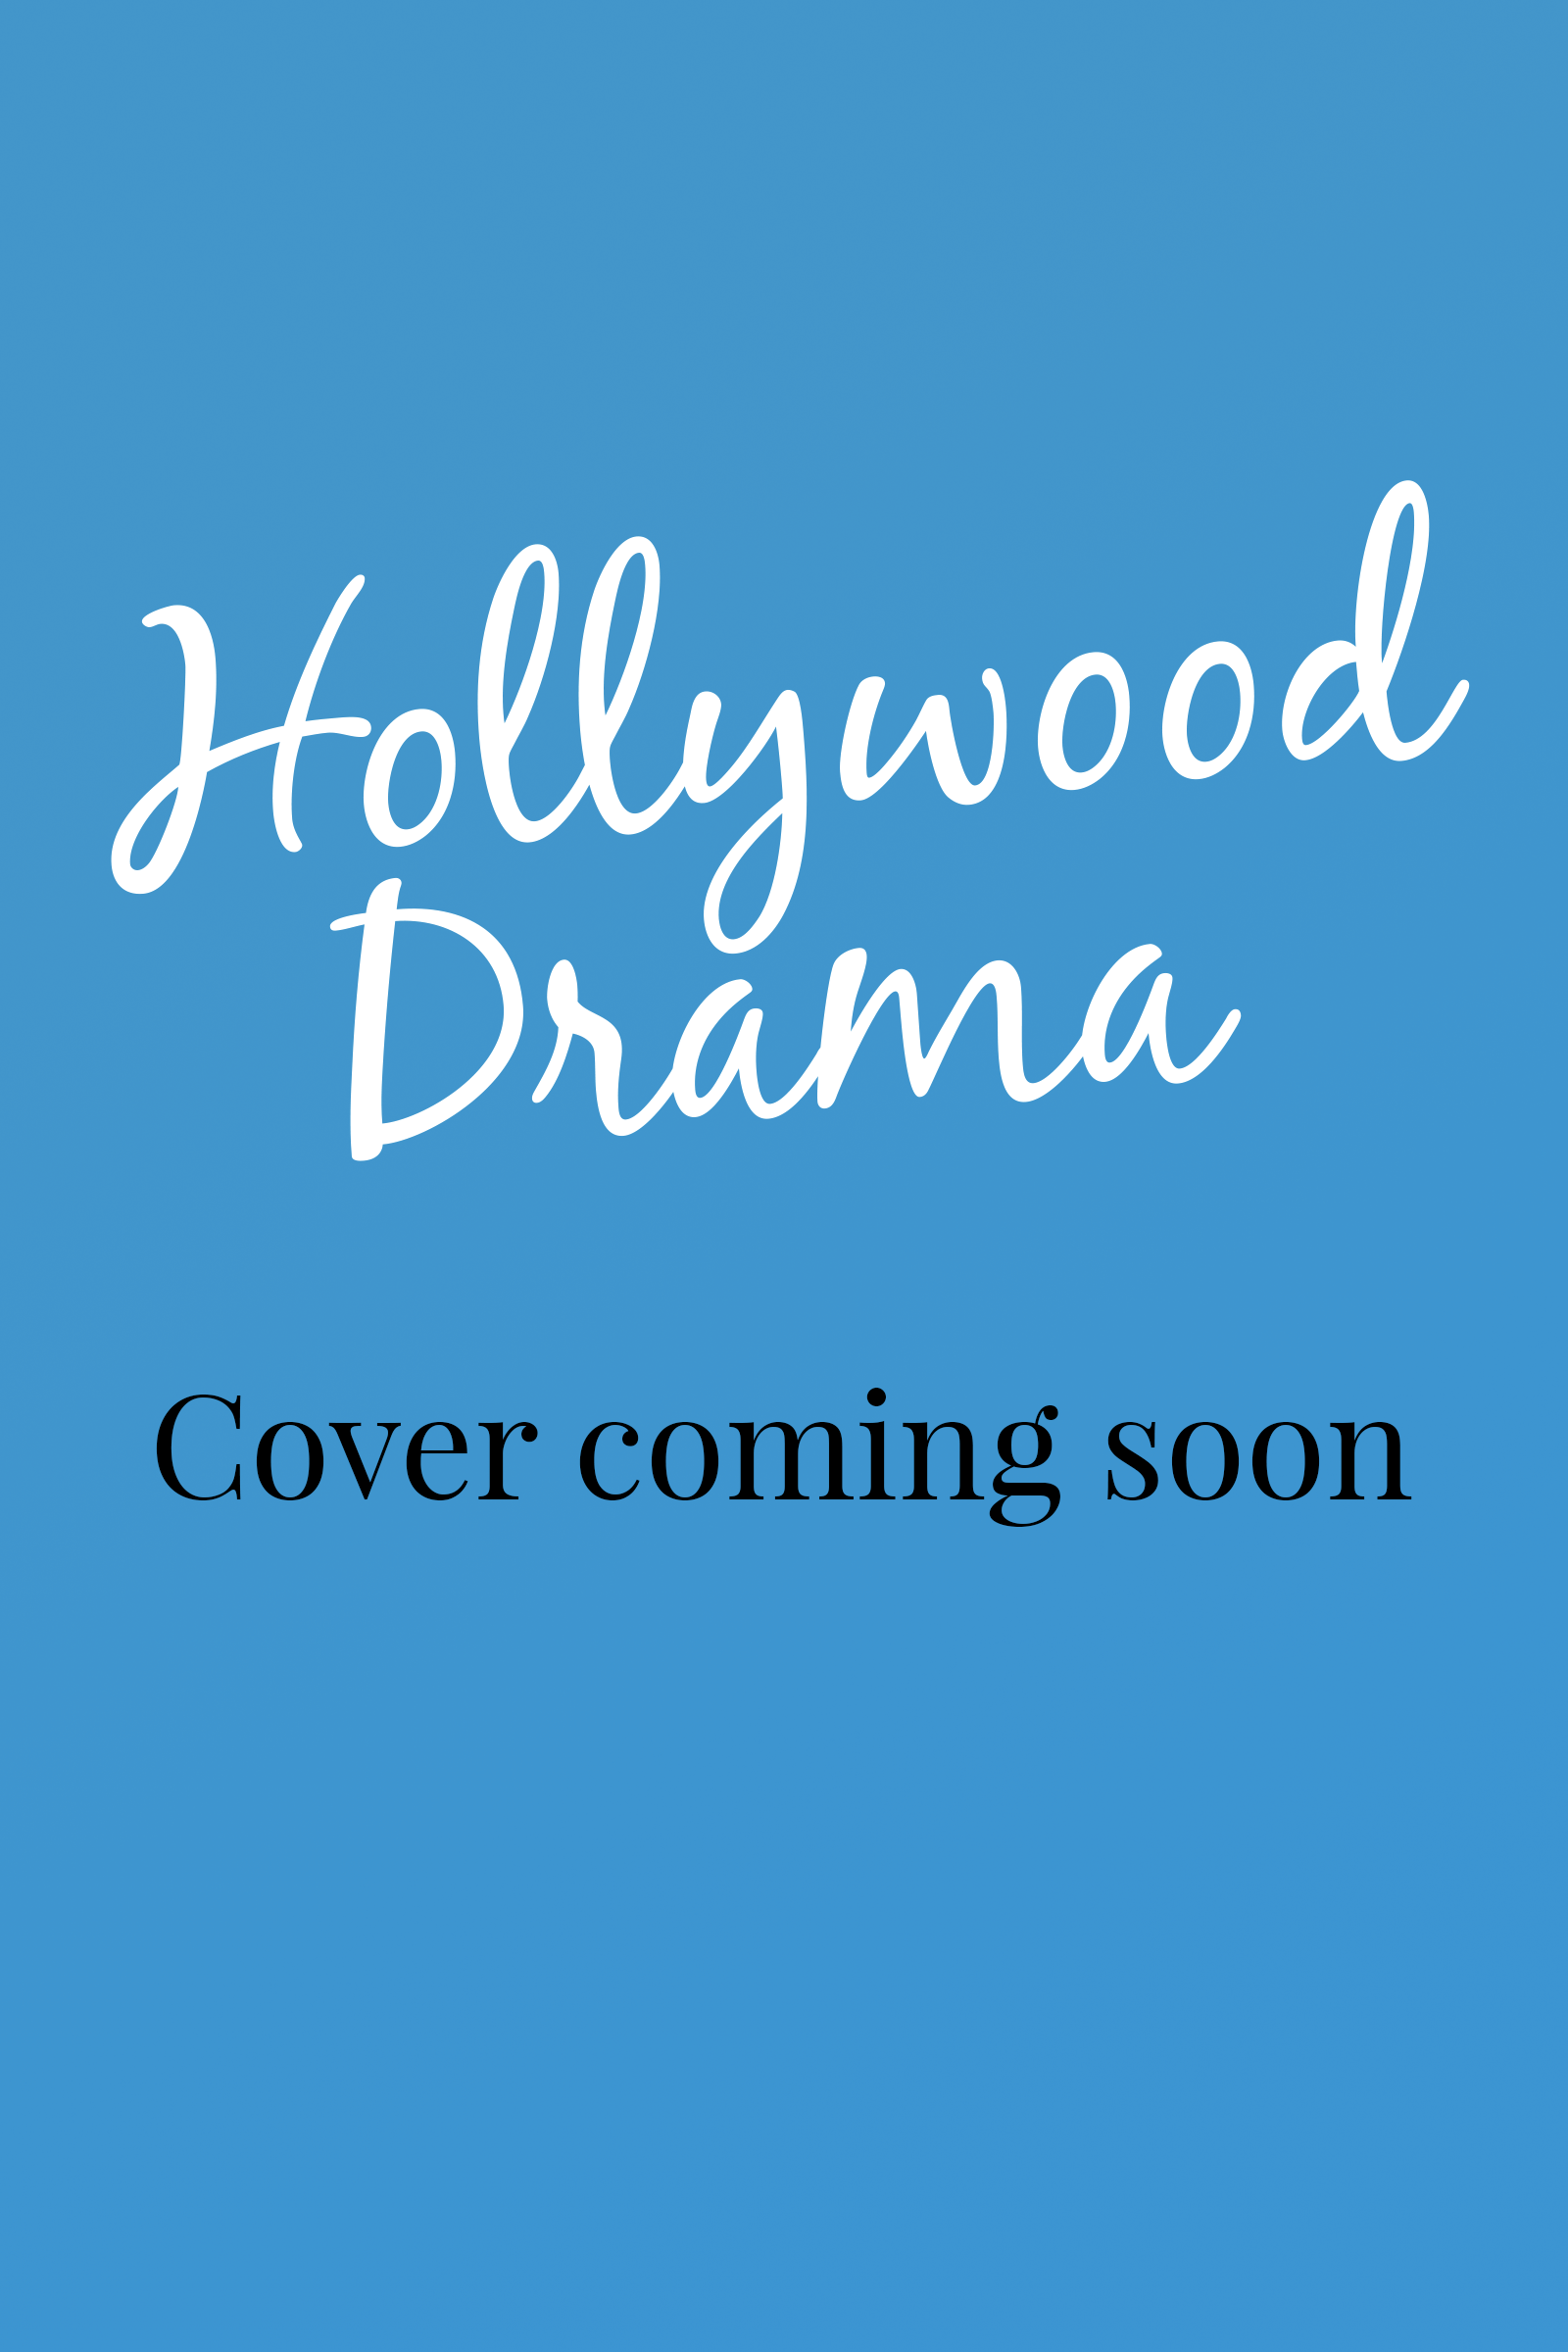 Hollywood Drama cover coming soon